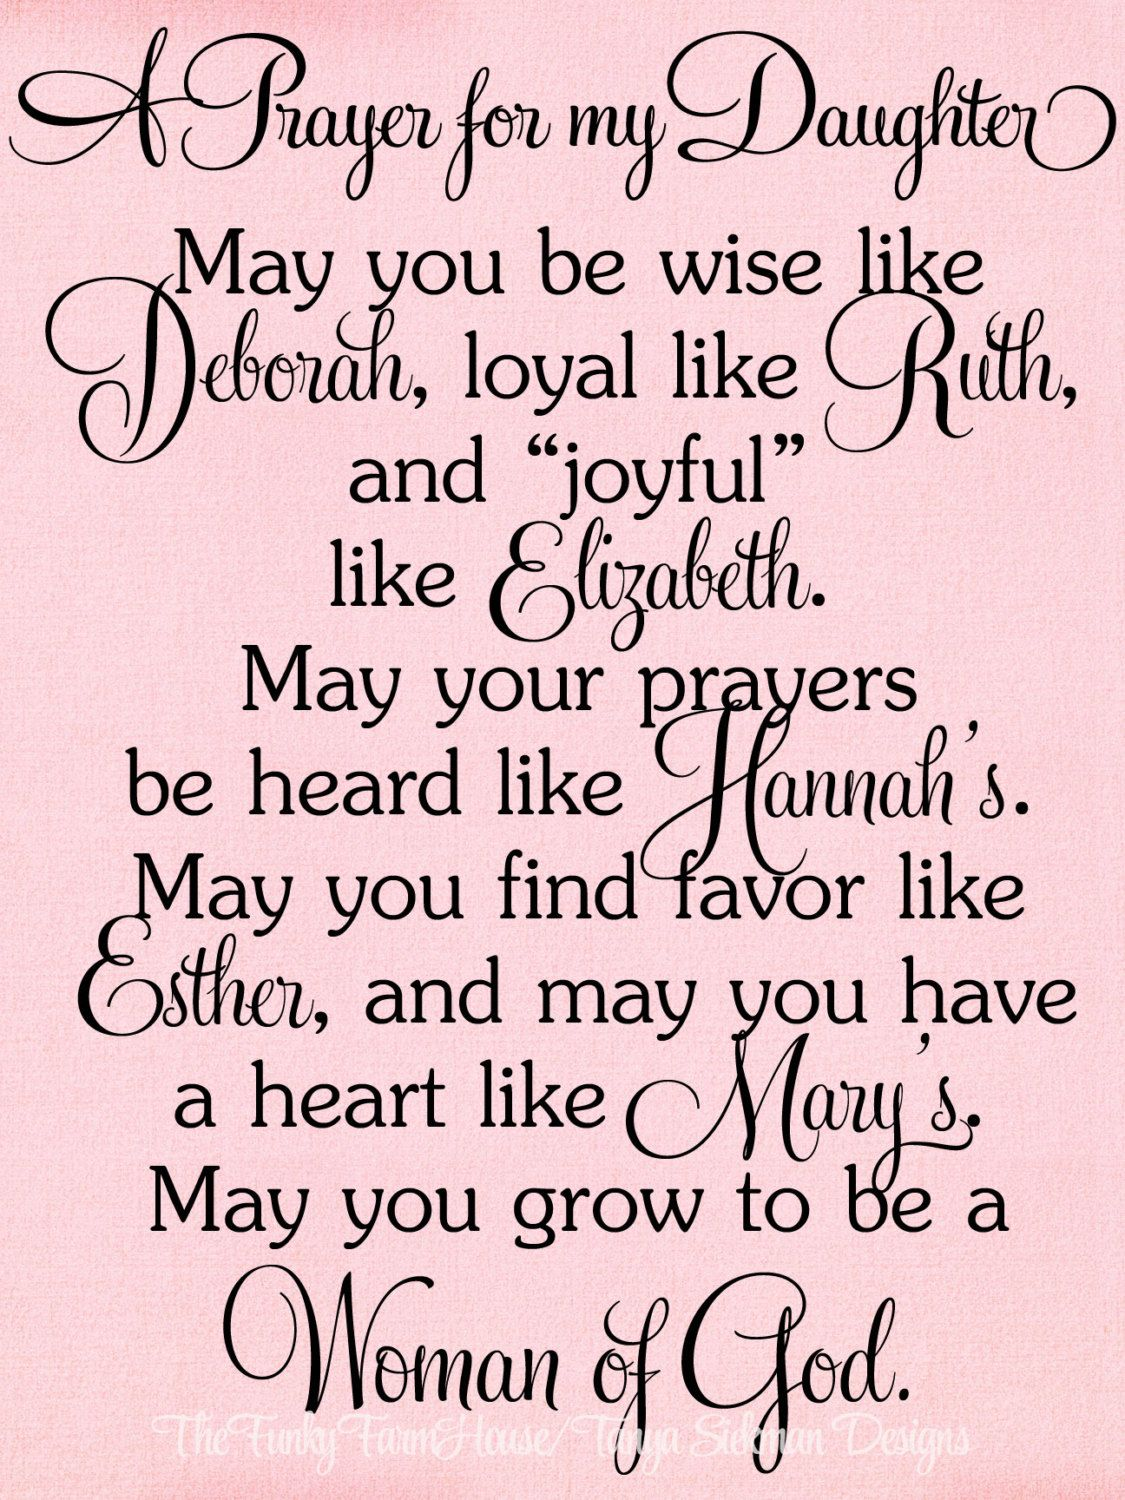 Happy Birthday Daughter Png - SVG, DXF & PNG - A Prayer for my Daughter   Prayers for my ...